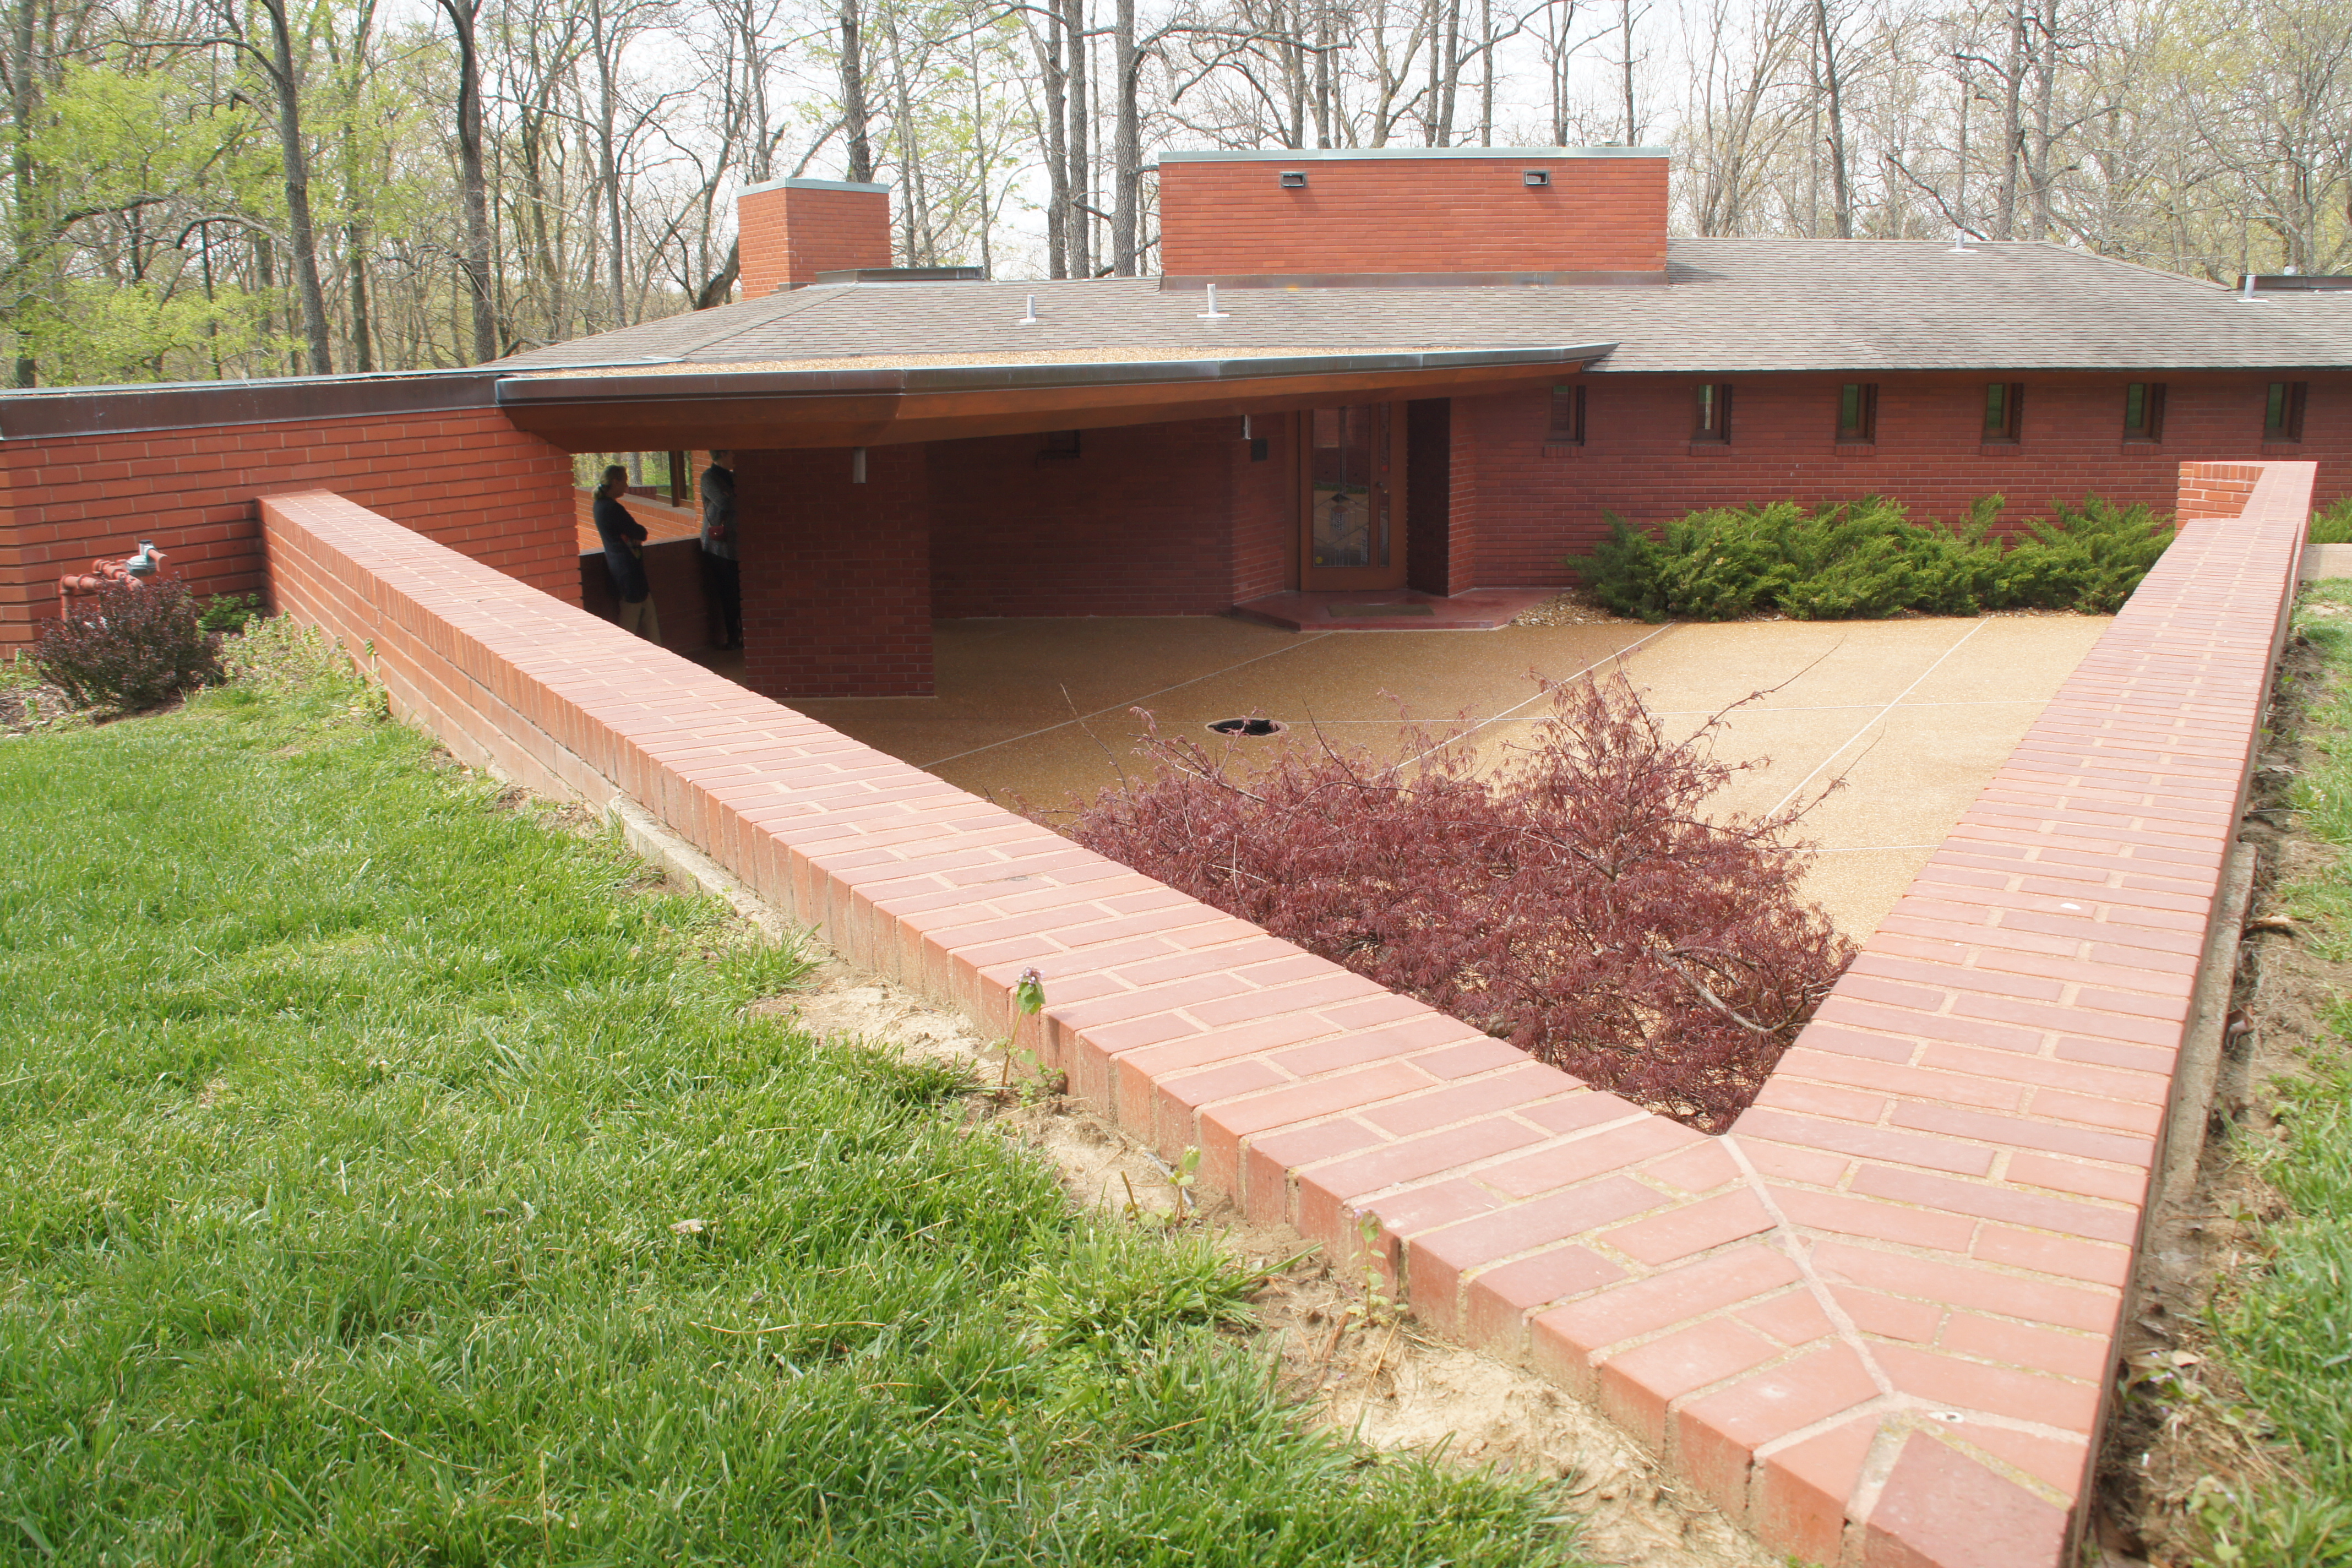 The super-angular patio of the Frank Lloyd Wright House in Ebsworth Park, Kirkwood, MO